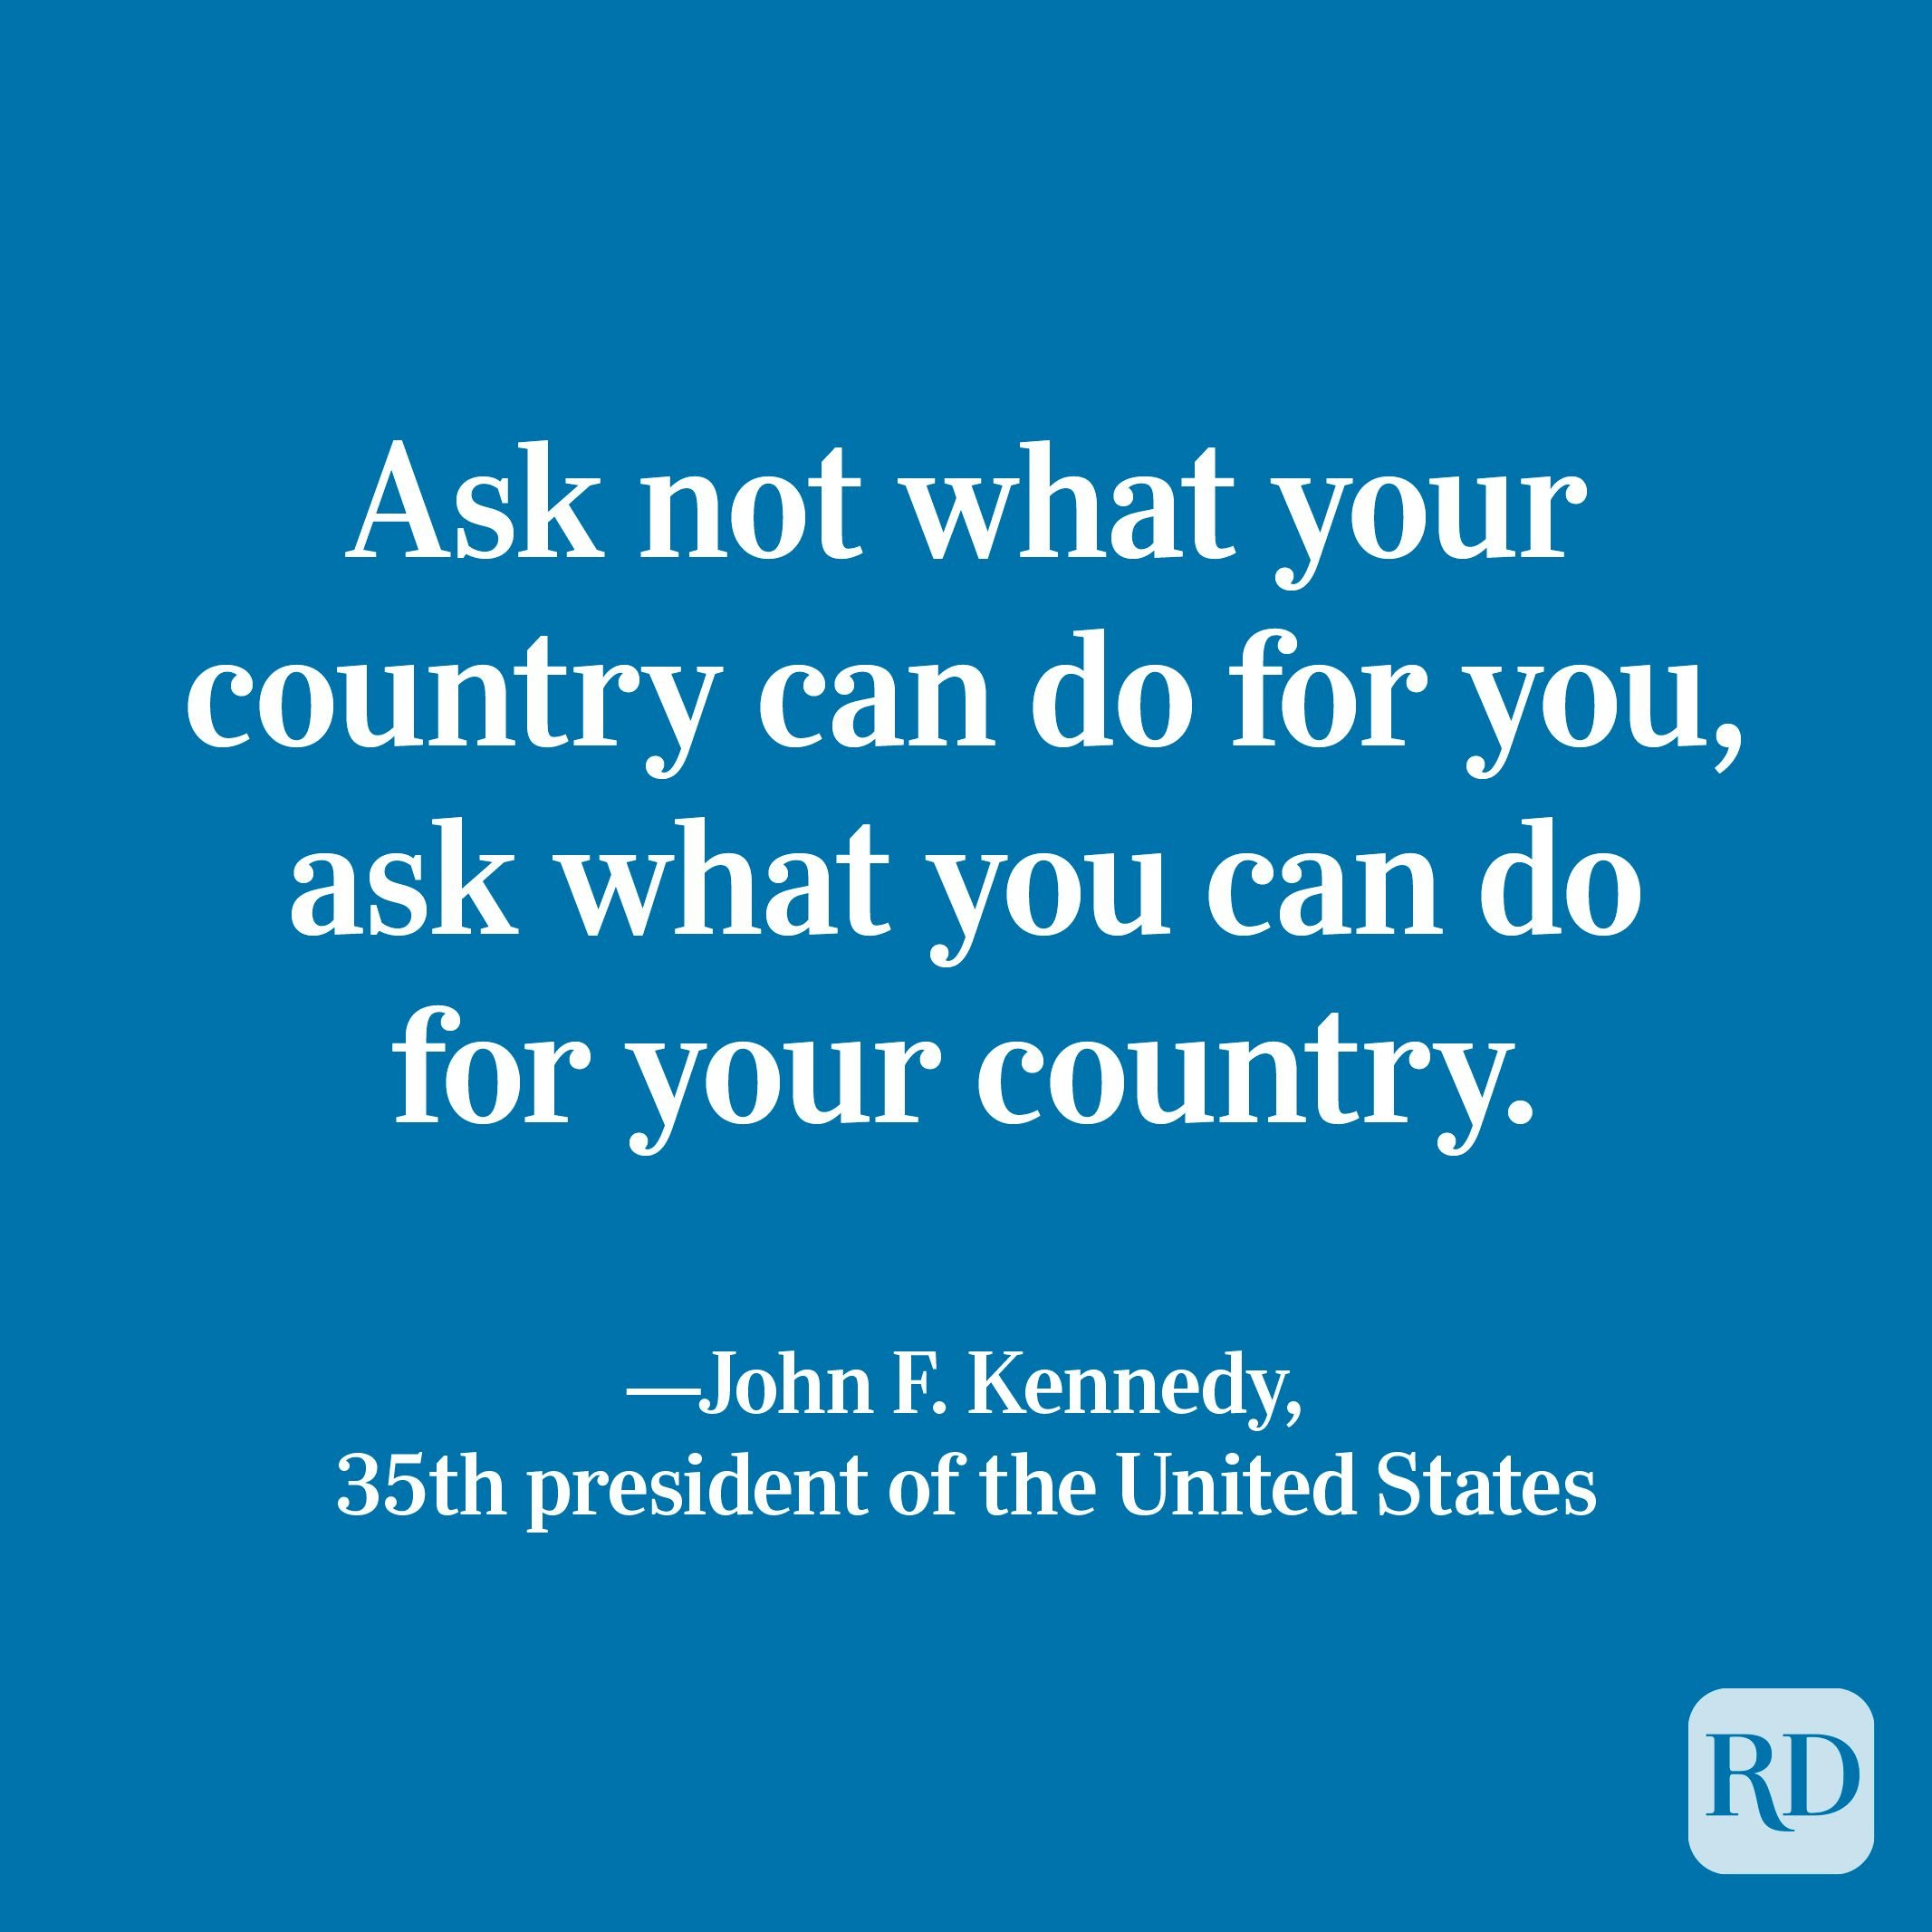 """""""Ask not what your country can do for you, ask what you can do for your country."""" —John F. Kennedy, 35th president of the United States."""